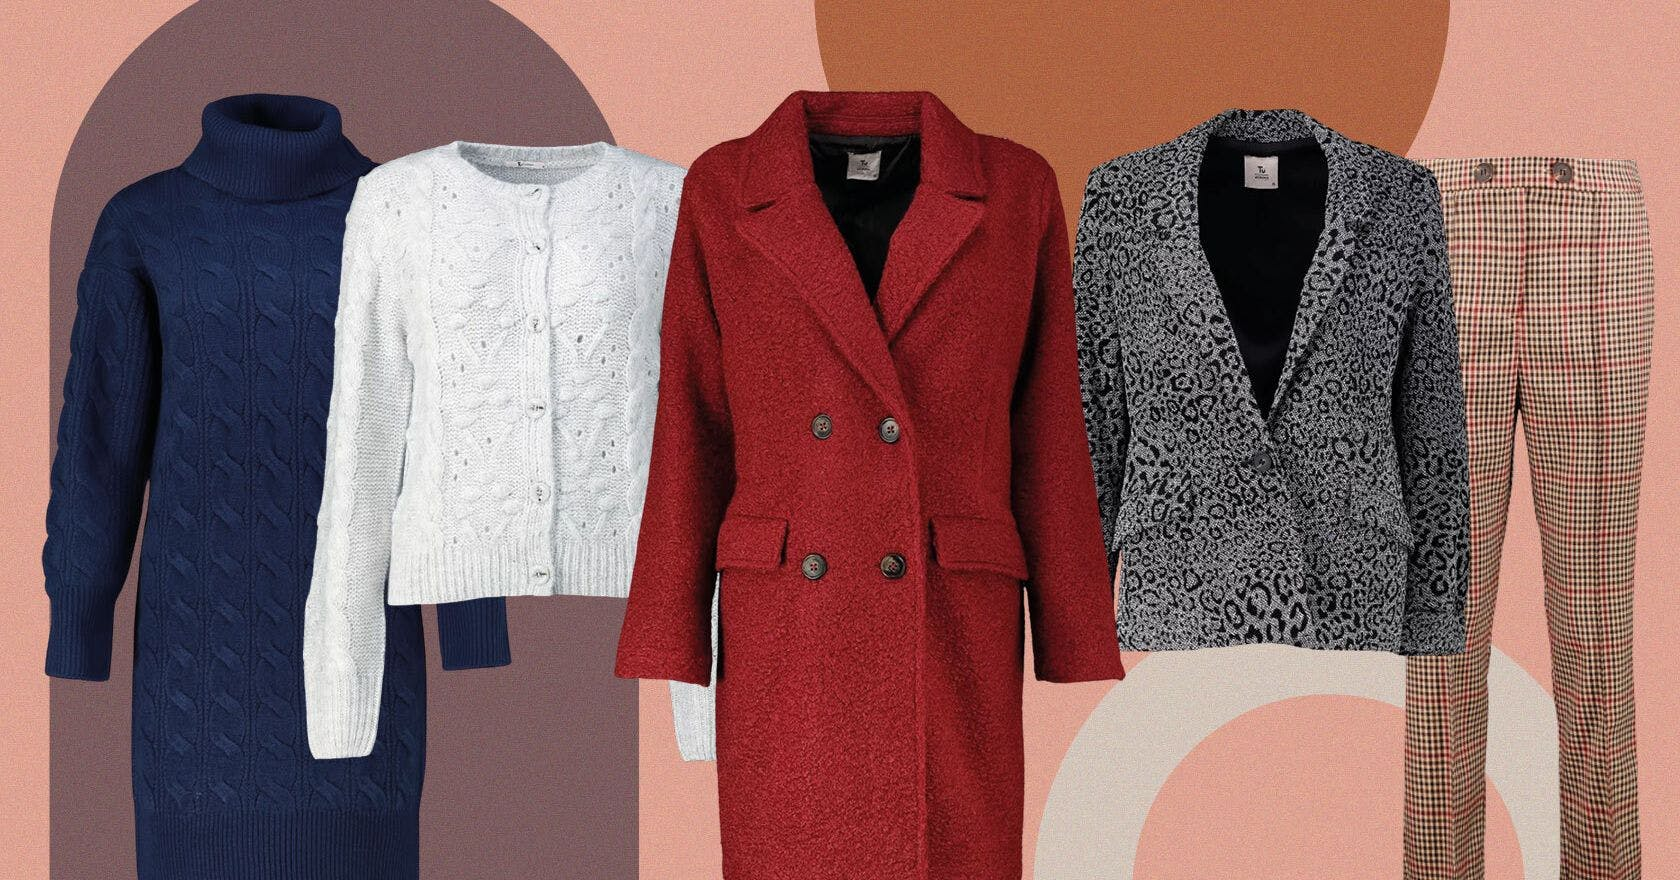 5 pieces of clothing that make us feel good and why